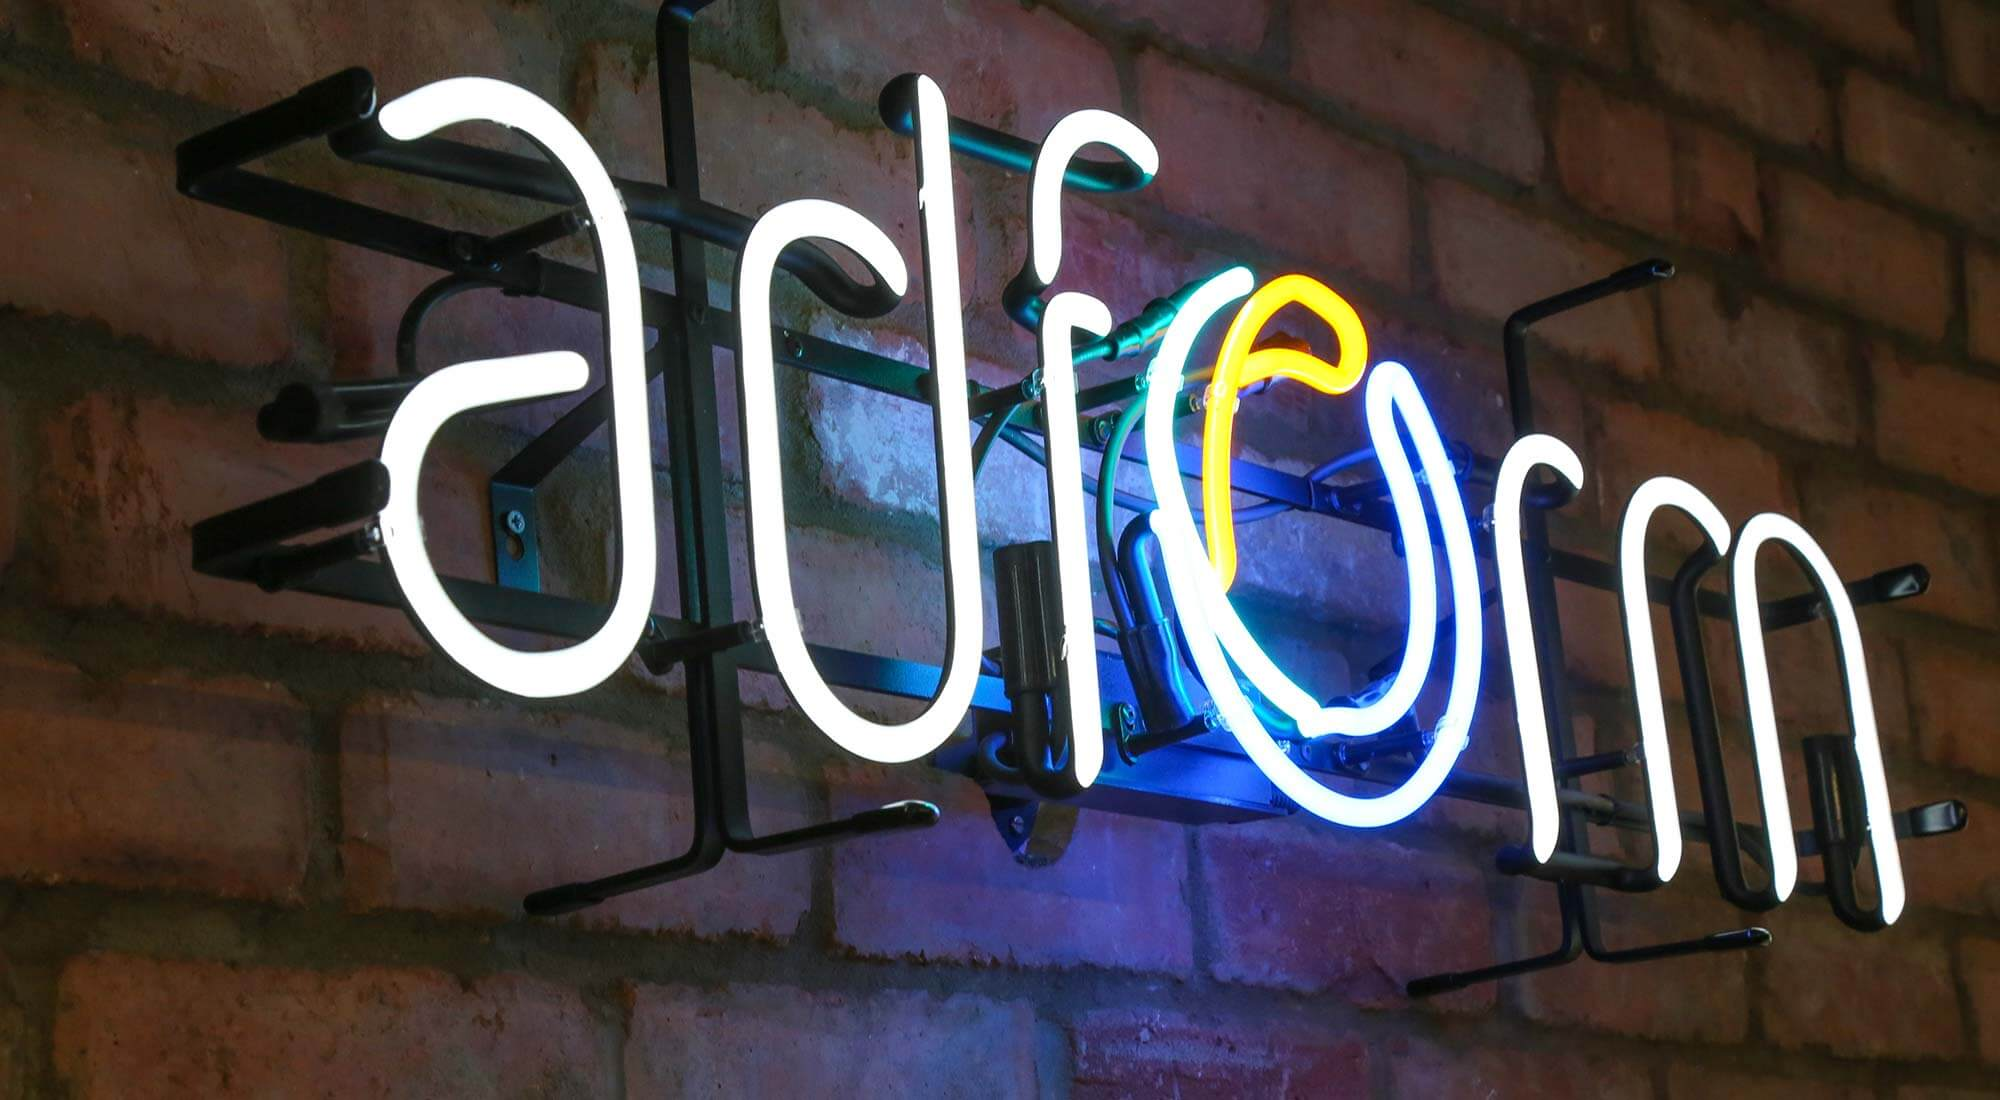 london office adform bespoke neon sign logo